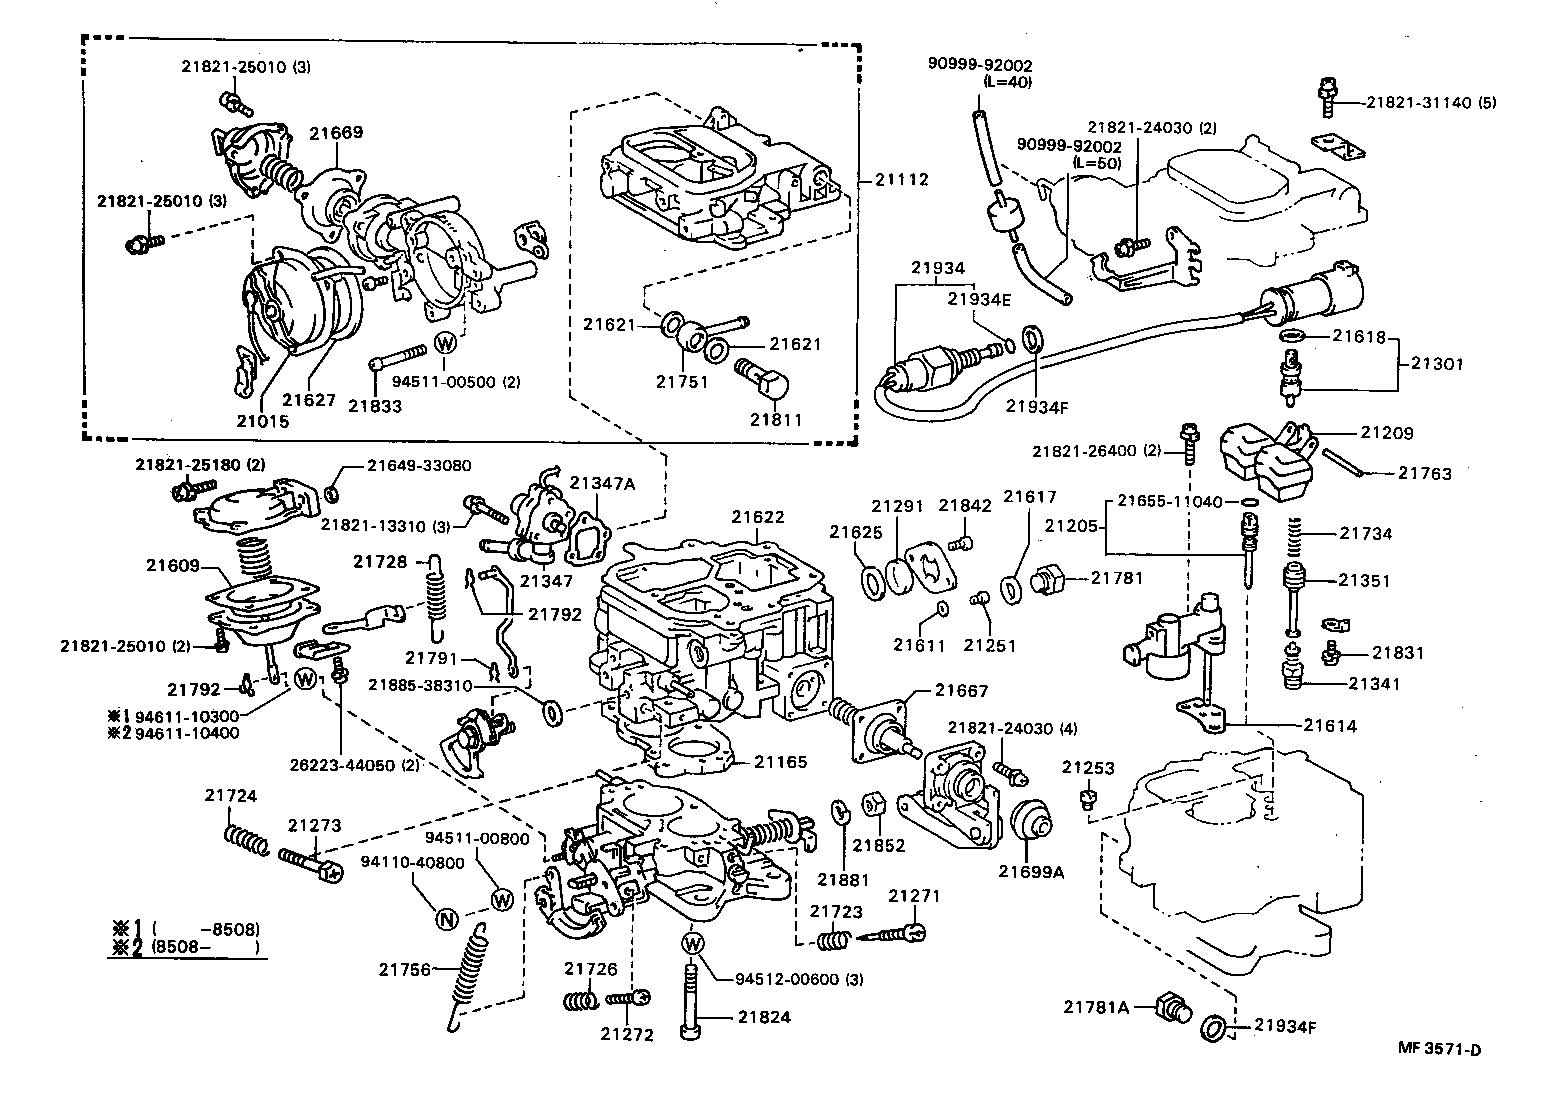 toyota pickup wiring diagram discover your wiring 1987 mazda b2000 engine diagram